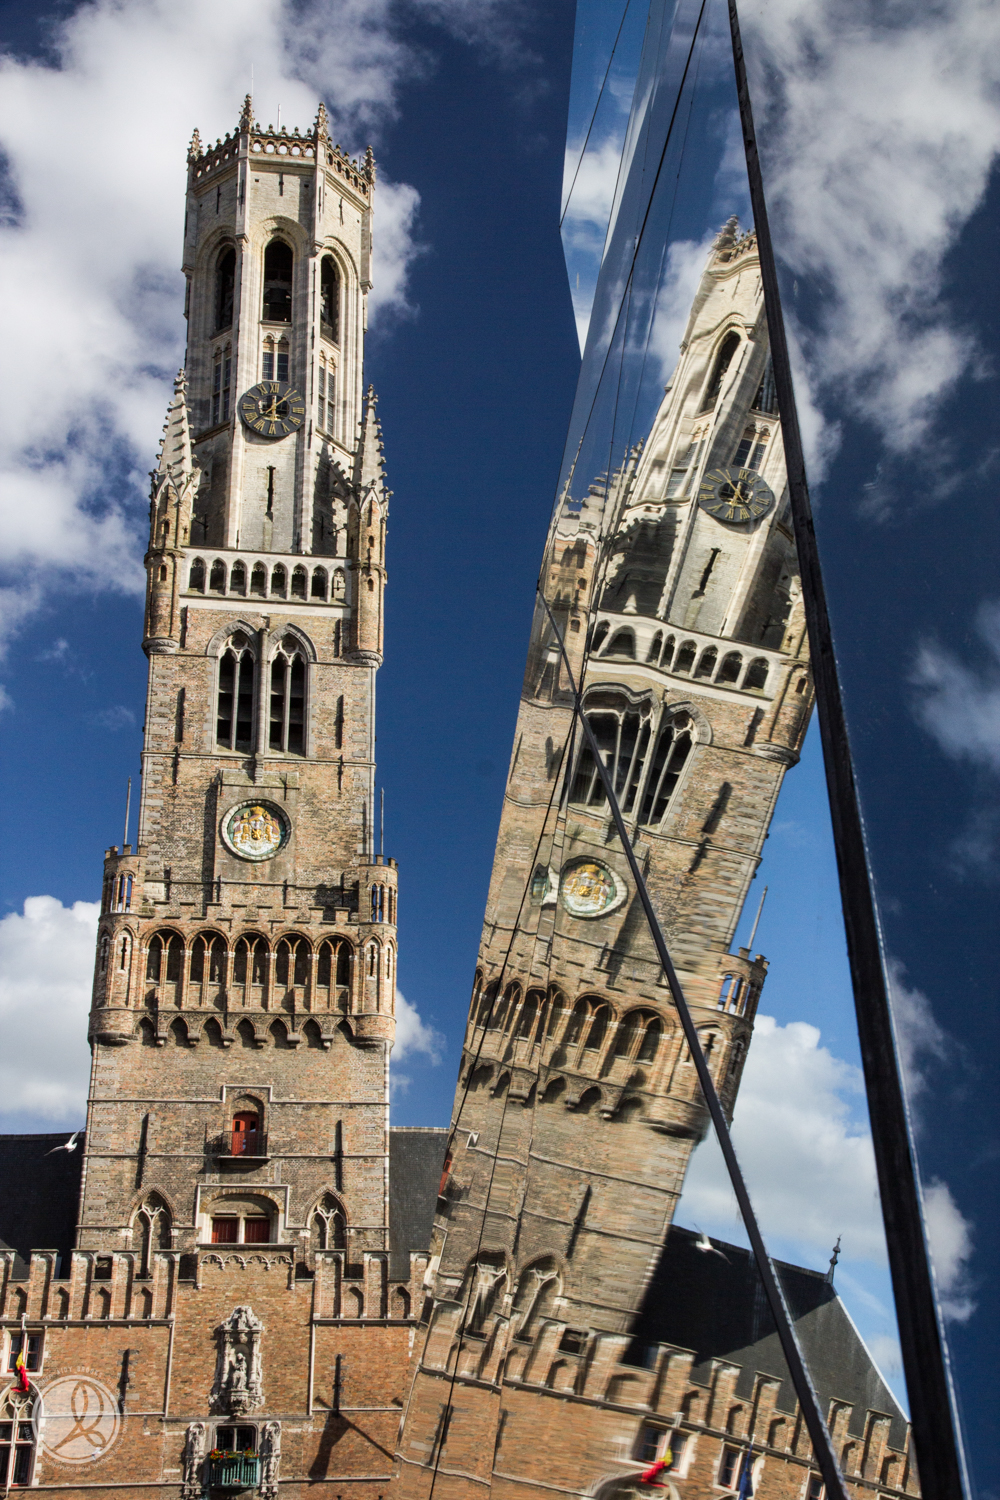 Bruge Cathederal - by Aidy Brooks